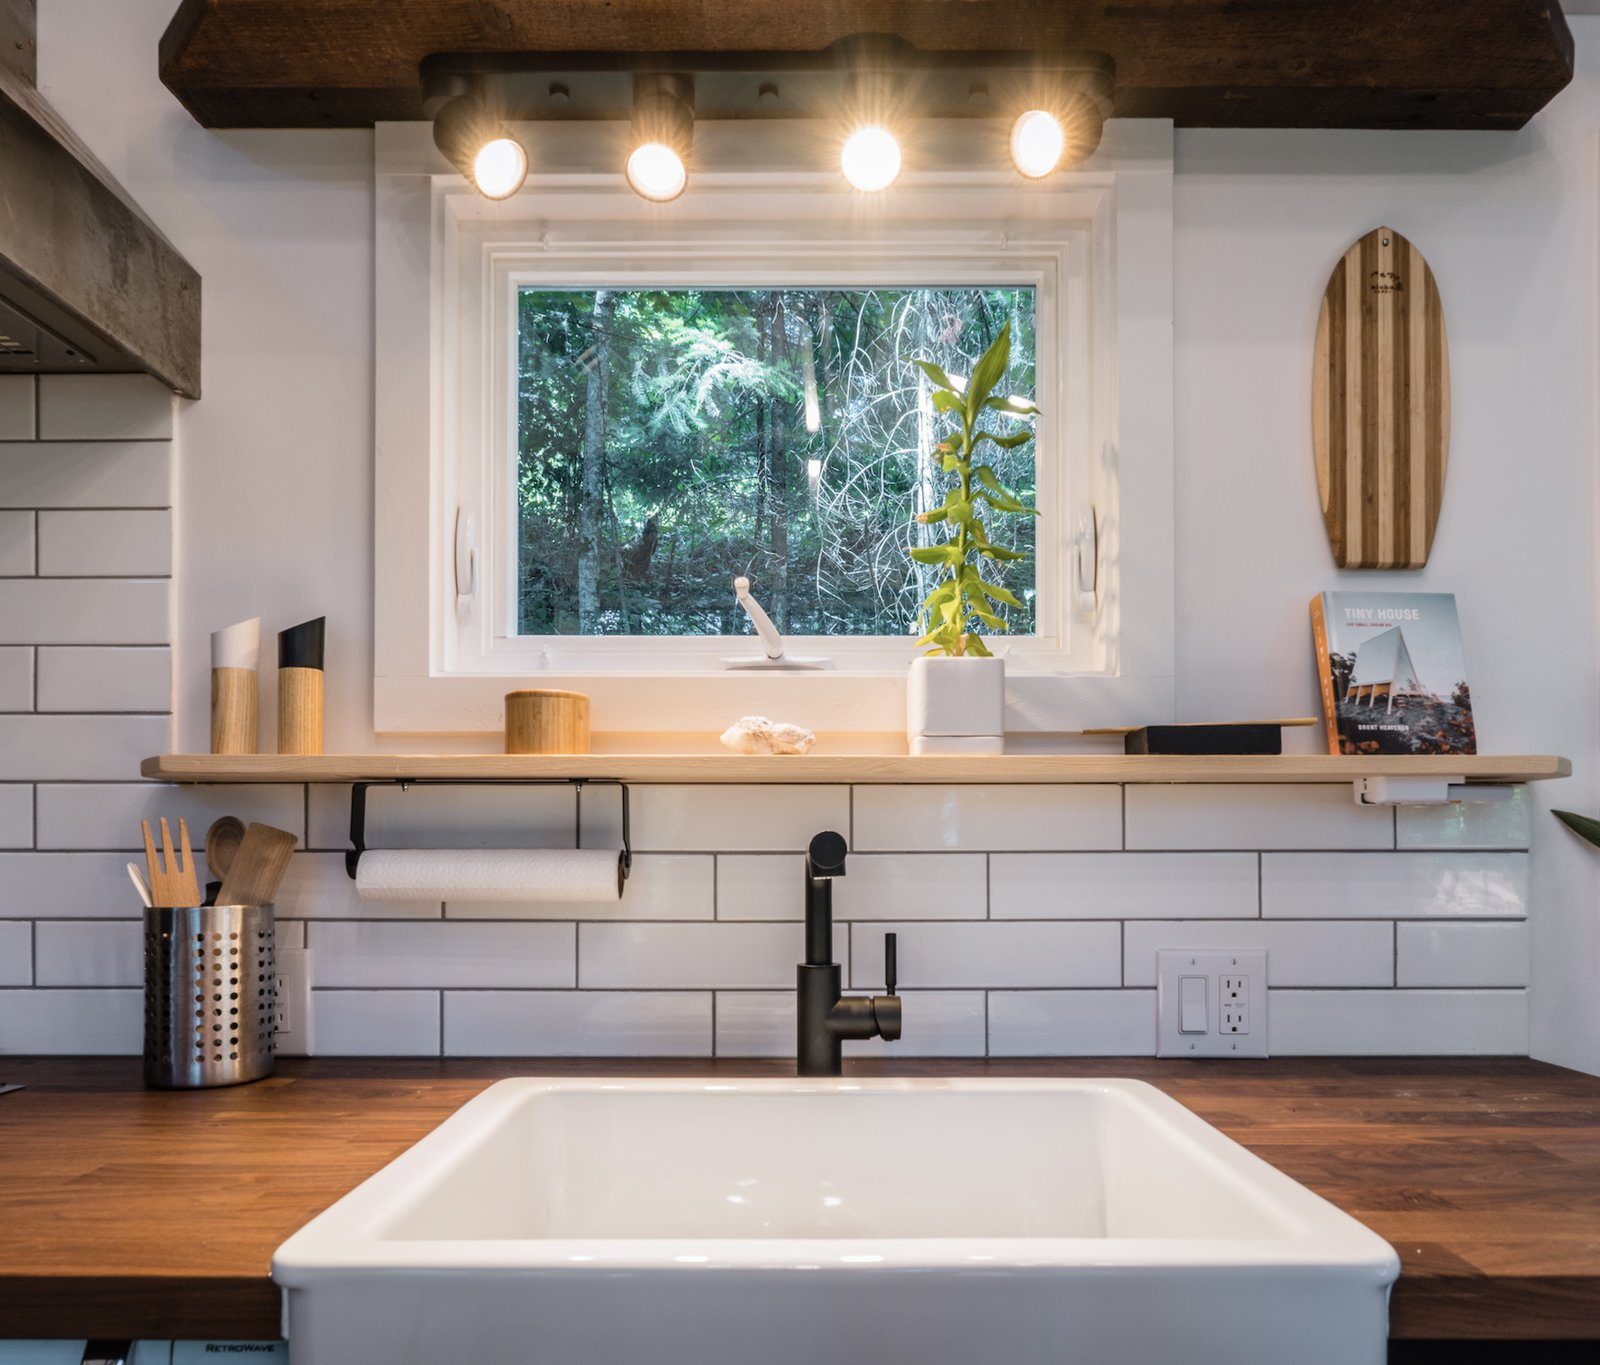 A small window above the kitchen sink looks out at the surroundings.  Photo 6 of 11 in A Furnished Tiny Home With Japanese and Scandinavian Vibes Is Offered at $99K